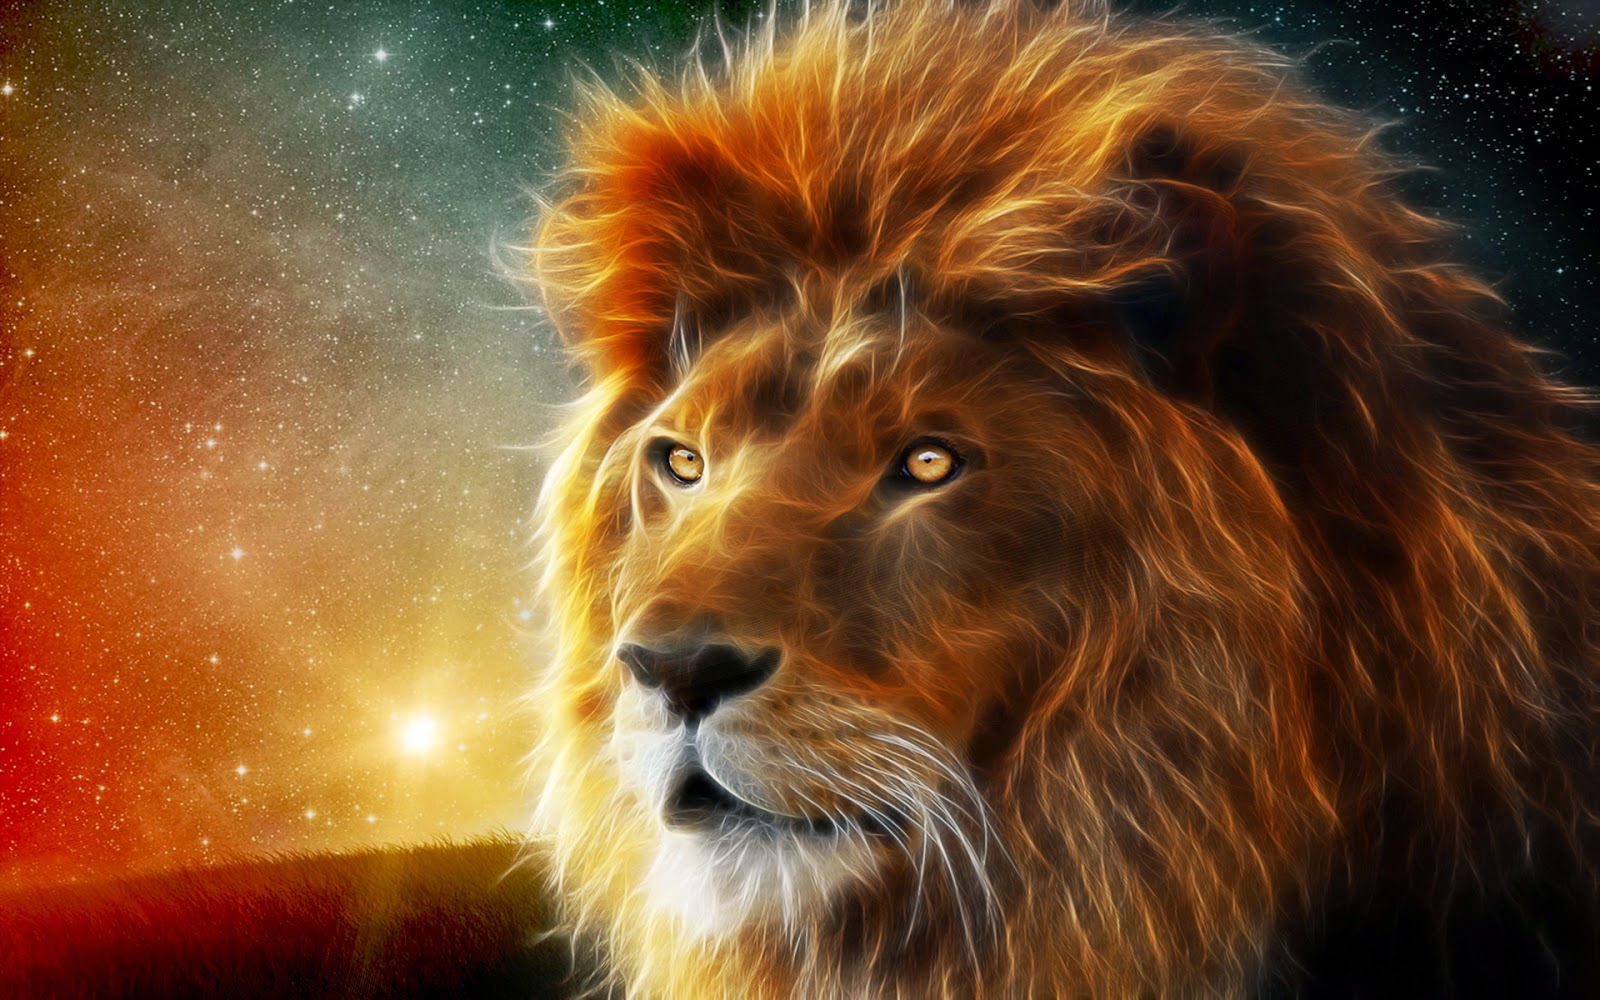 Realistic lion adult coloring pages wallpaper animals lion of letter iphone high quality